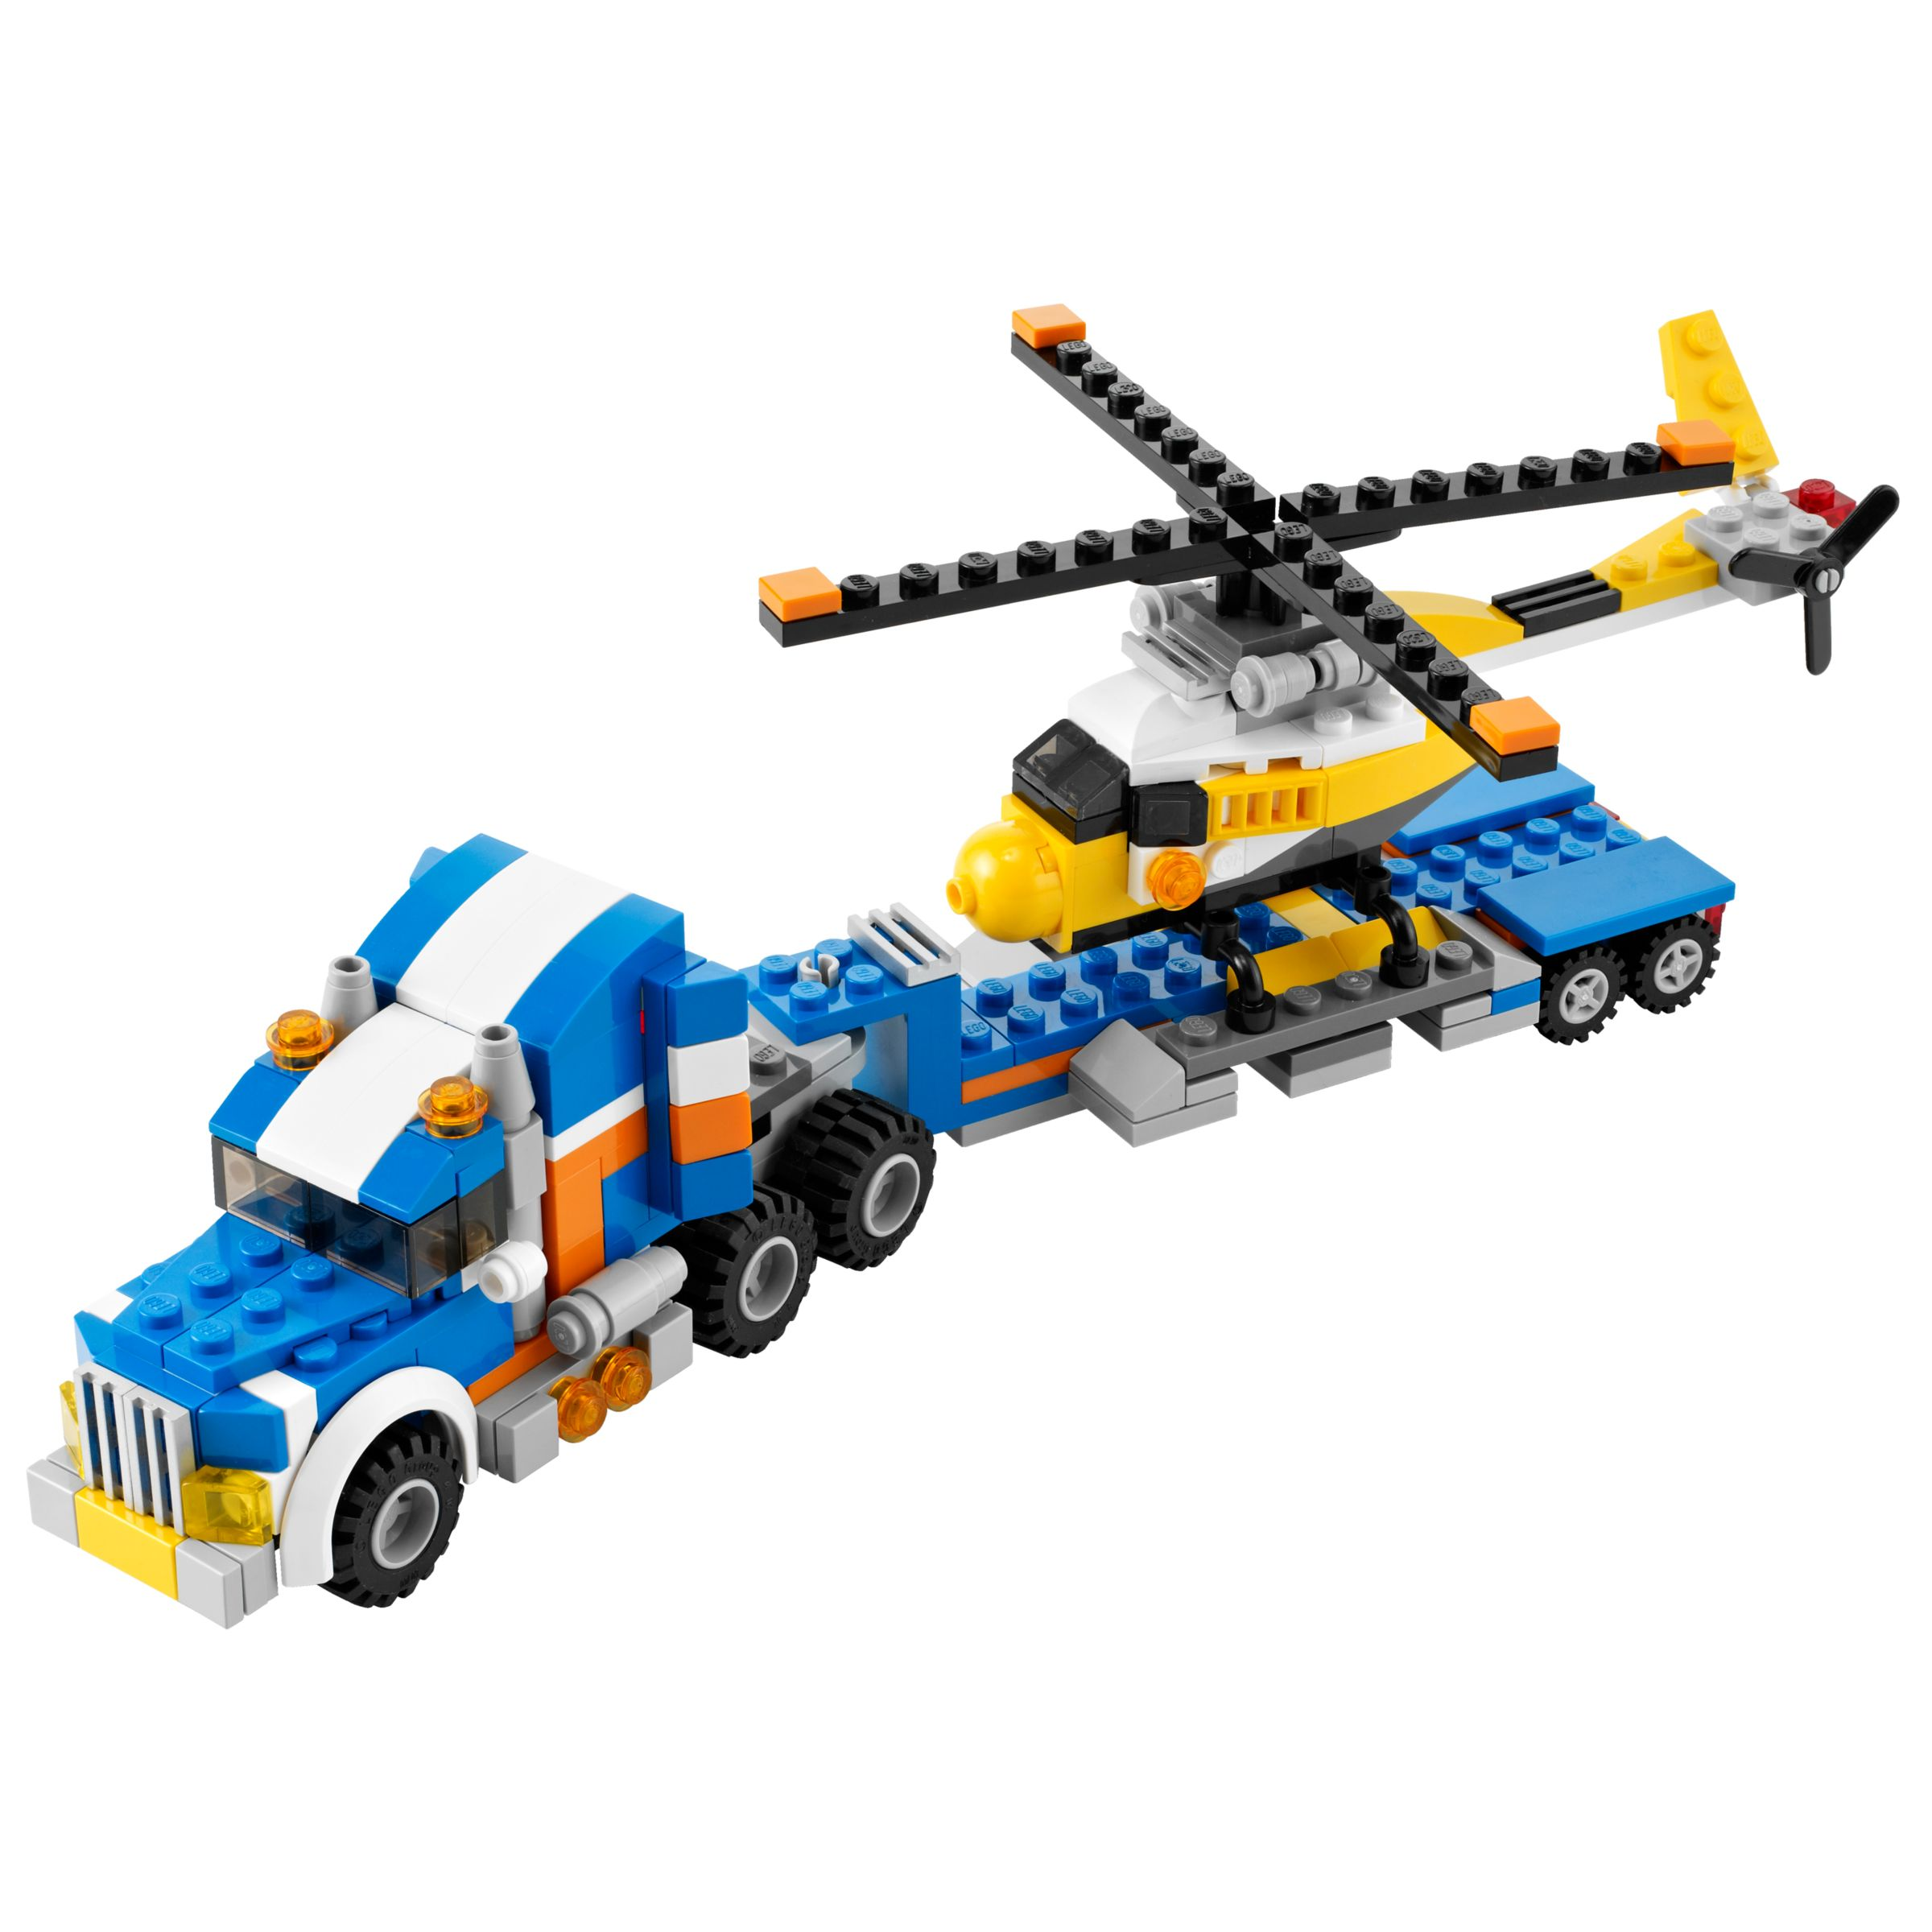 Lego Creator 3 in 1 Transport Truck Building Kit